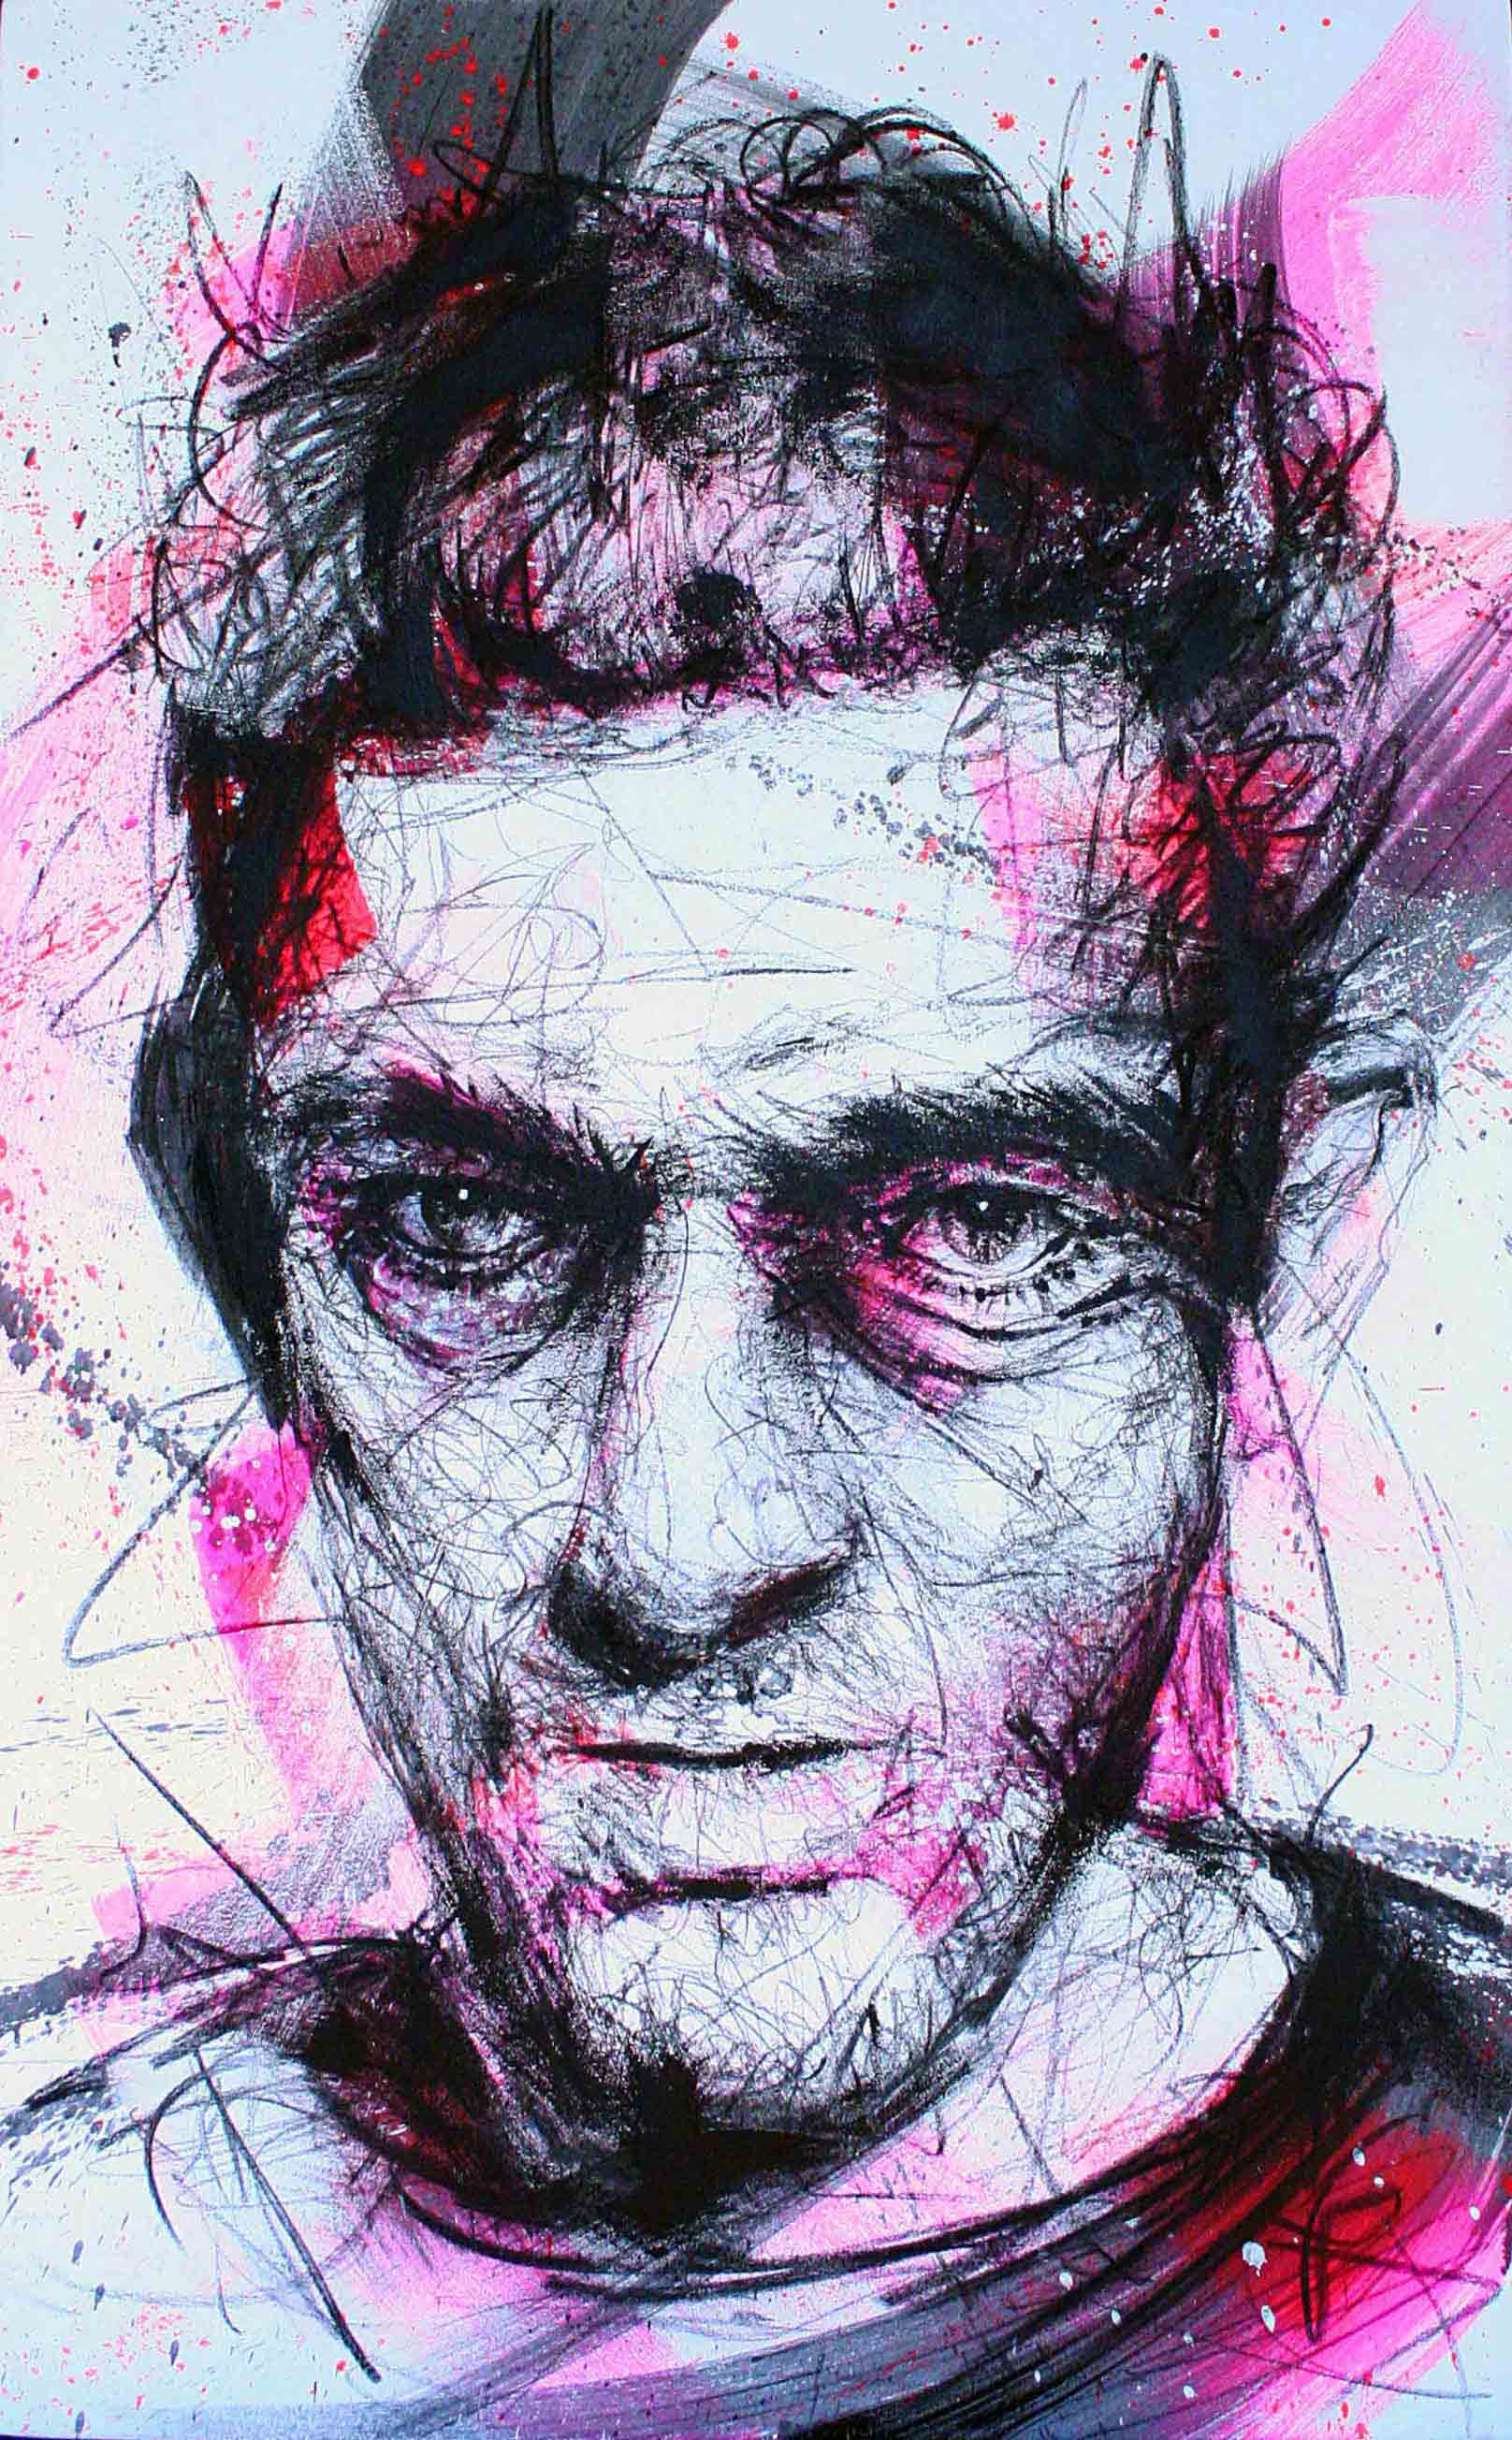 vincent cassel de la collection de peinture chromophobia